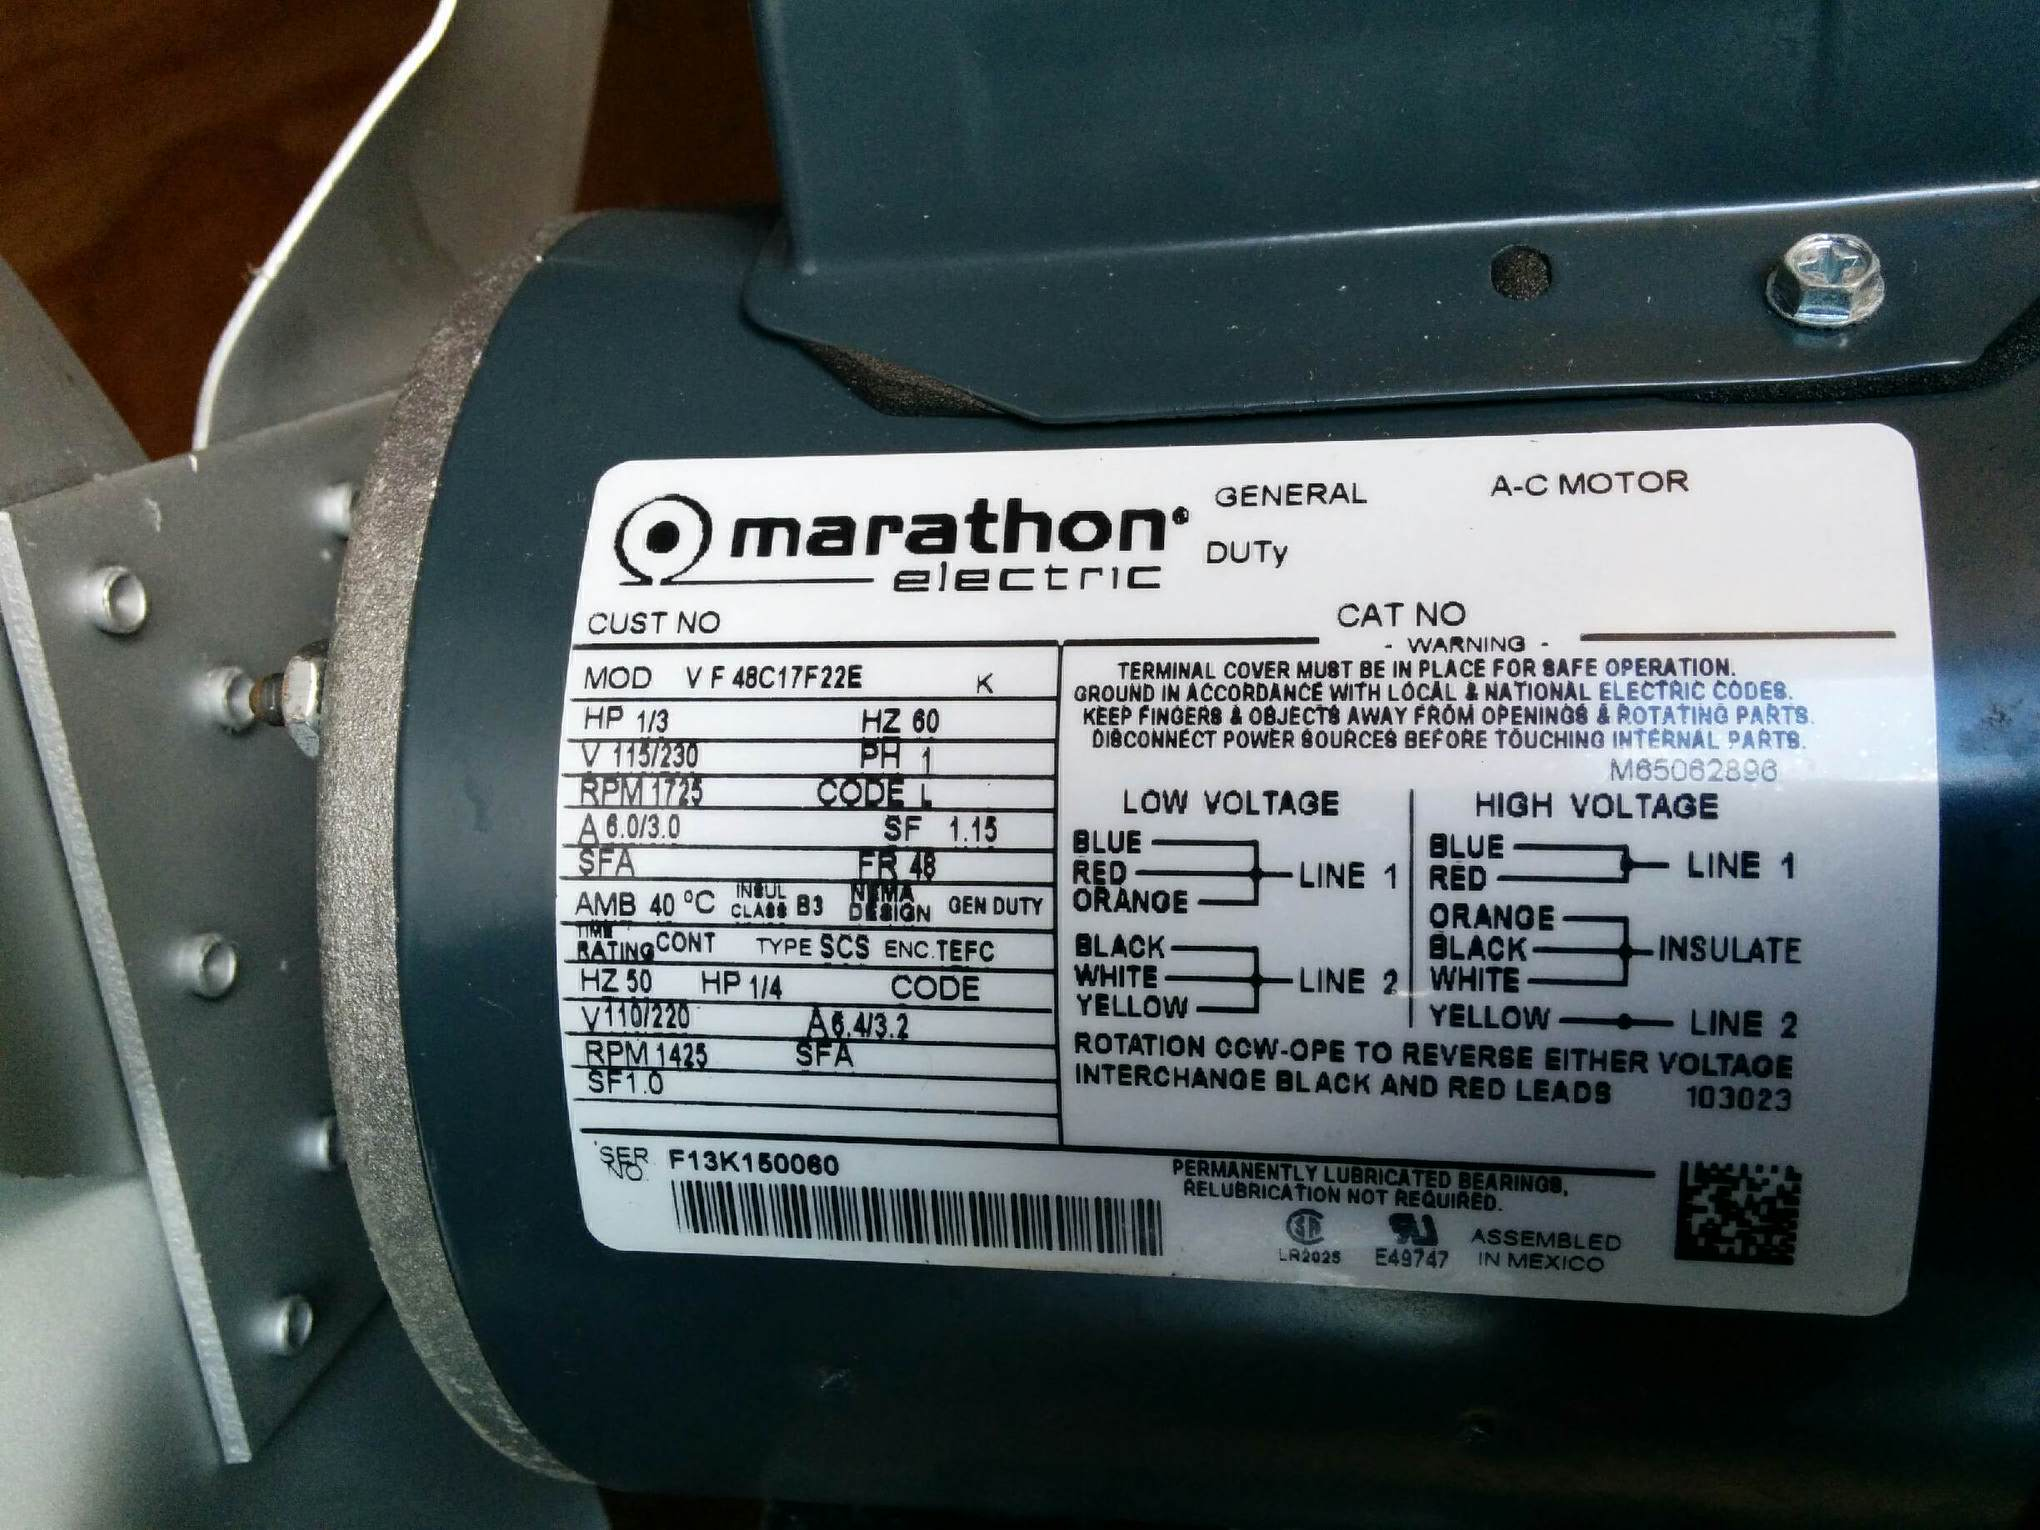 century ac motor wiring diagram ford f250 diagrams 1 hp marathon great installation of electric todays rh 16 11 12 1813weddingbarn com model numbers single phase